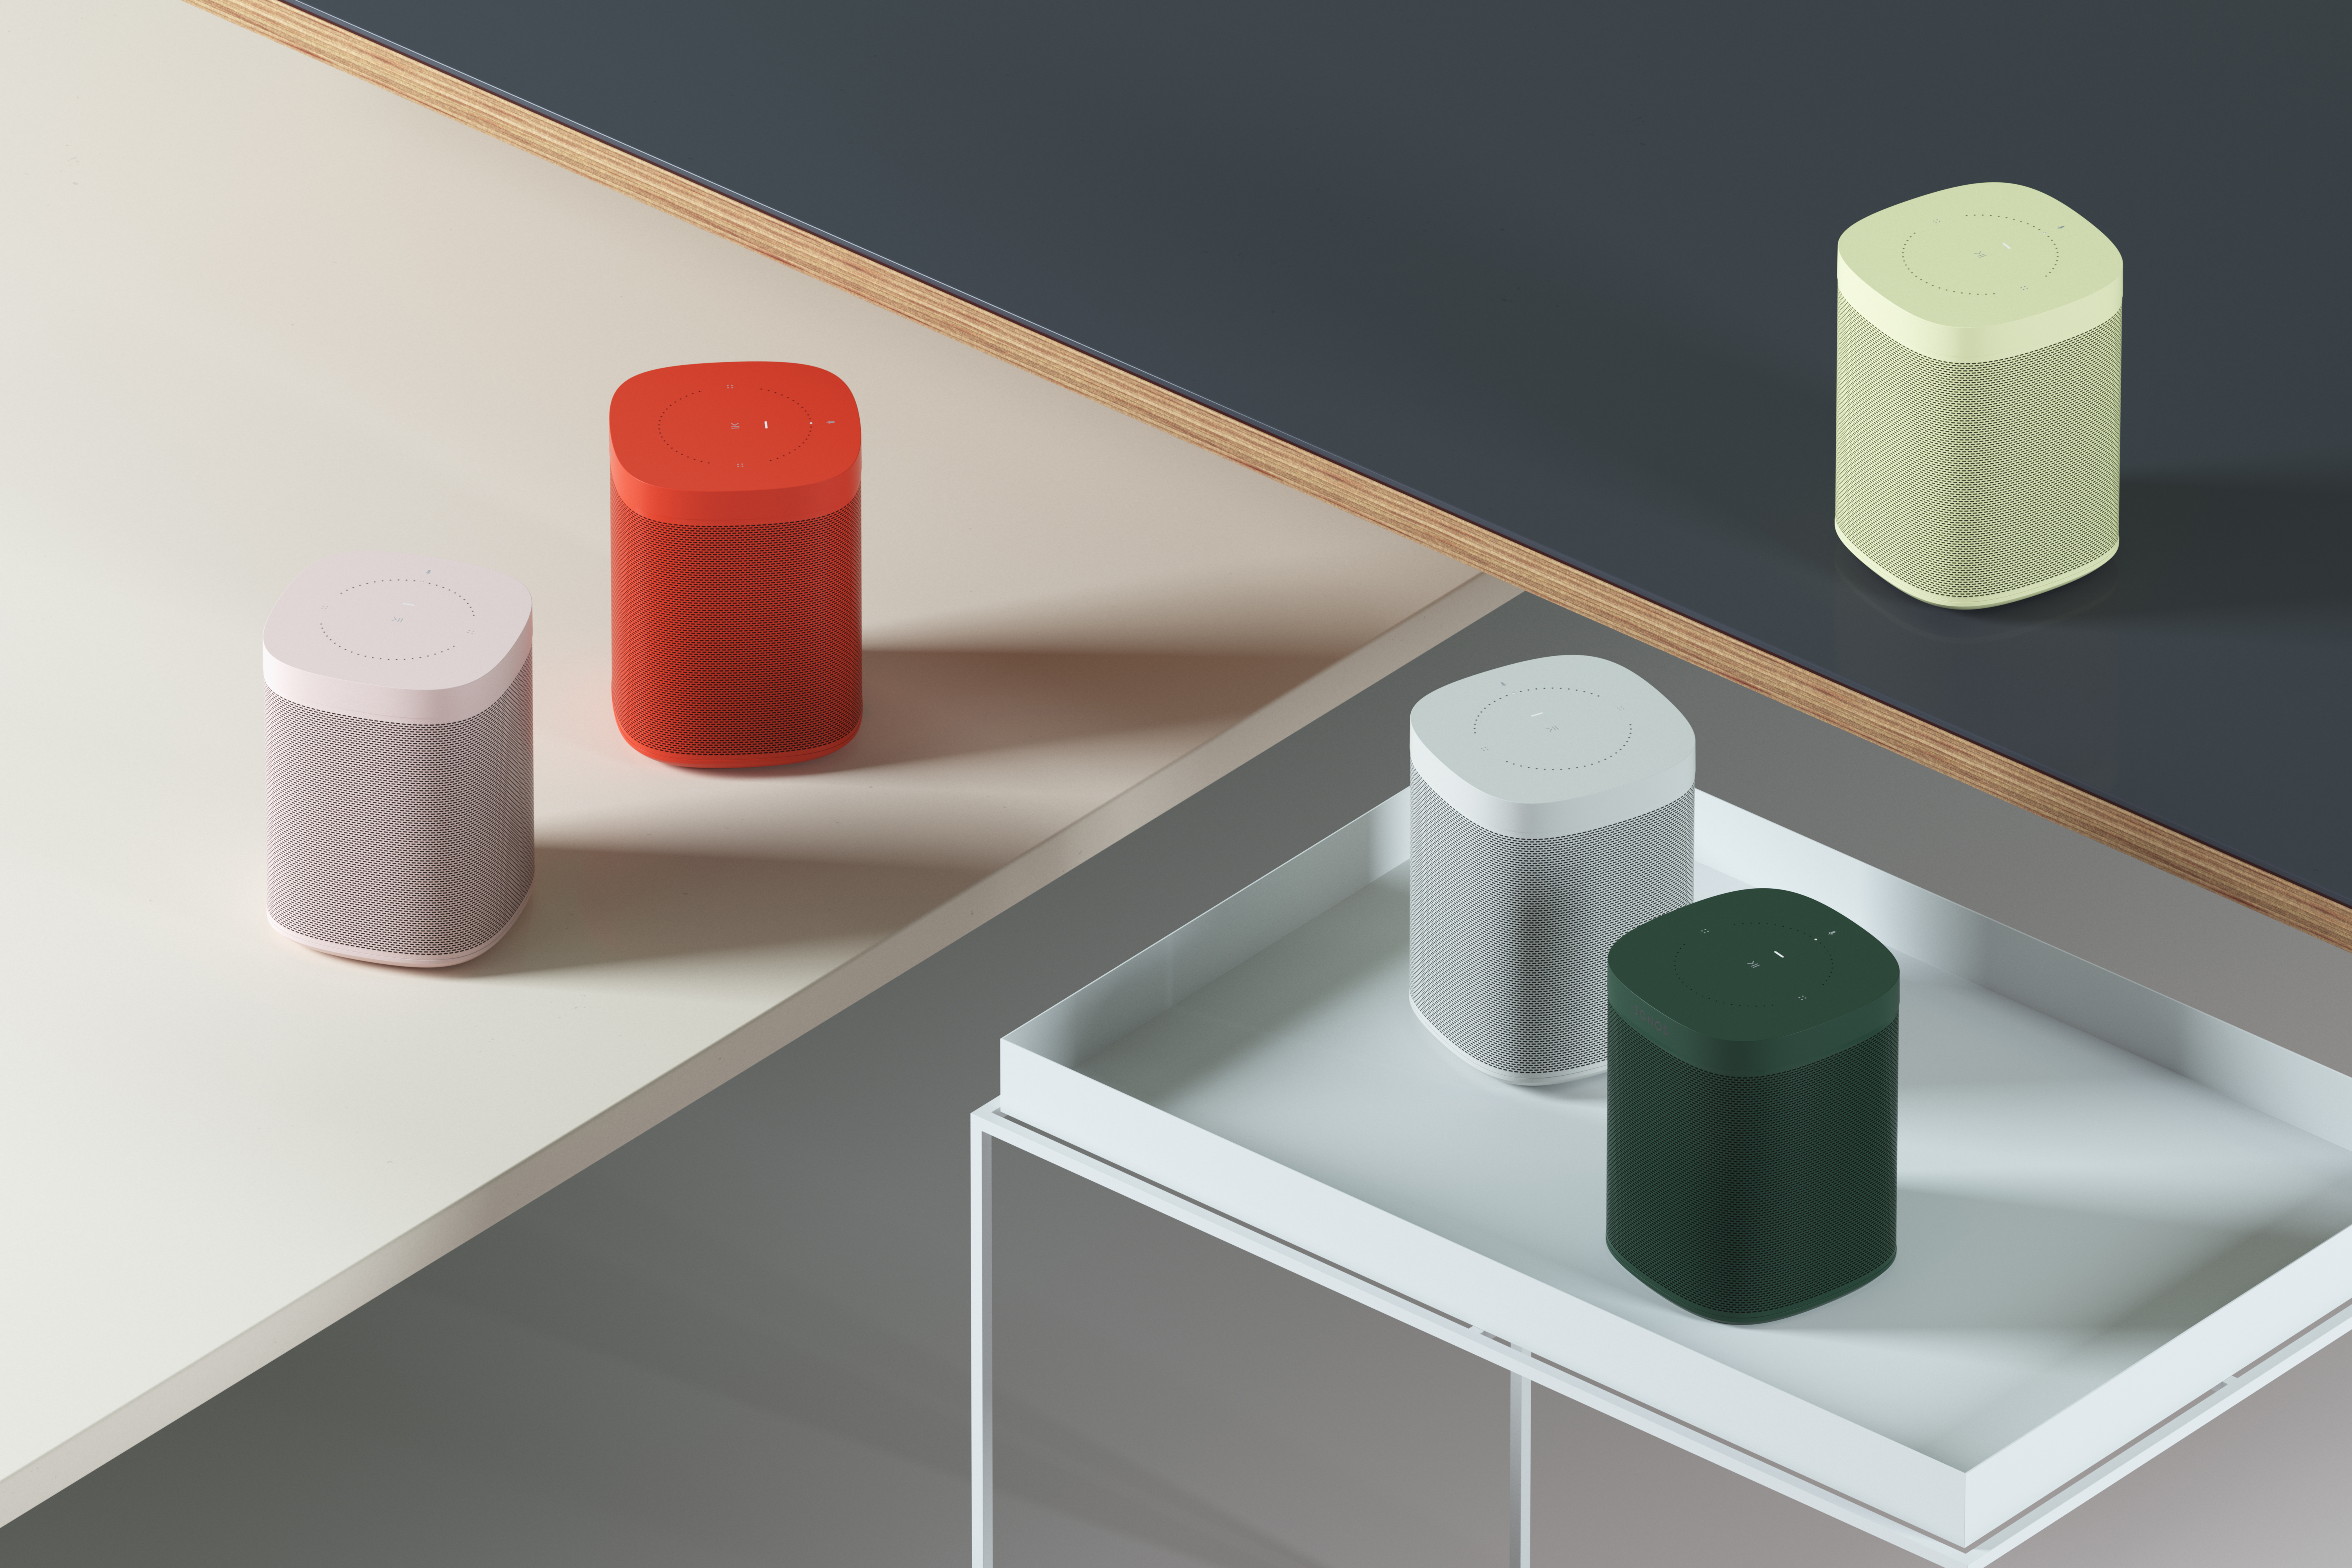 A cluster of five rectangular volumes with rounded edges in different colors displayed on two table tops.